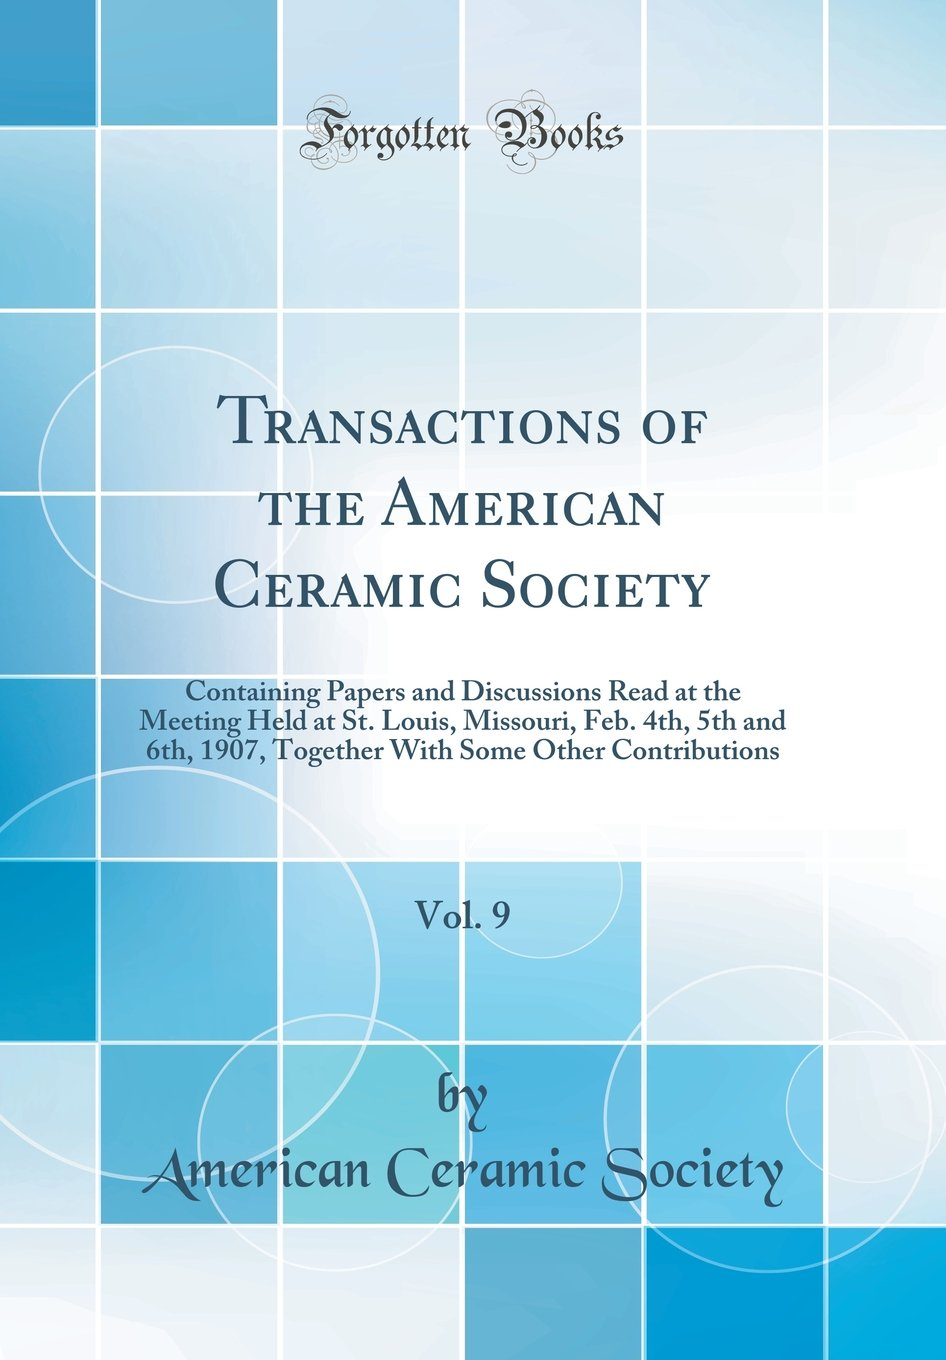 Download Transactions of the American Ceramic Society, Vol. 9: Containing Papers and Discussions Read at the Meeting Held at St. Louis, Missouri, Feb. 4th, 5th ... Some Other Contributions (Classic Reprint) pdf